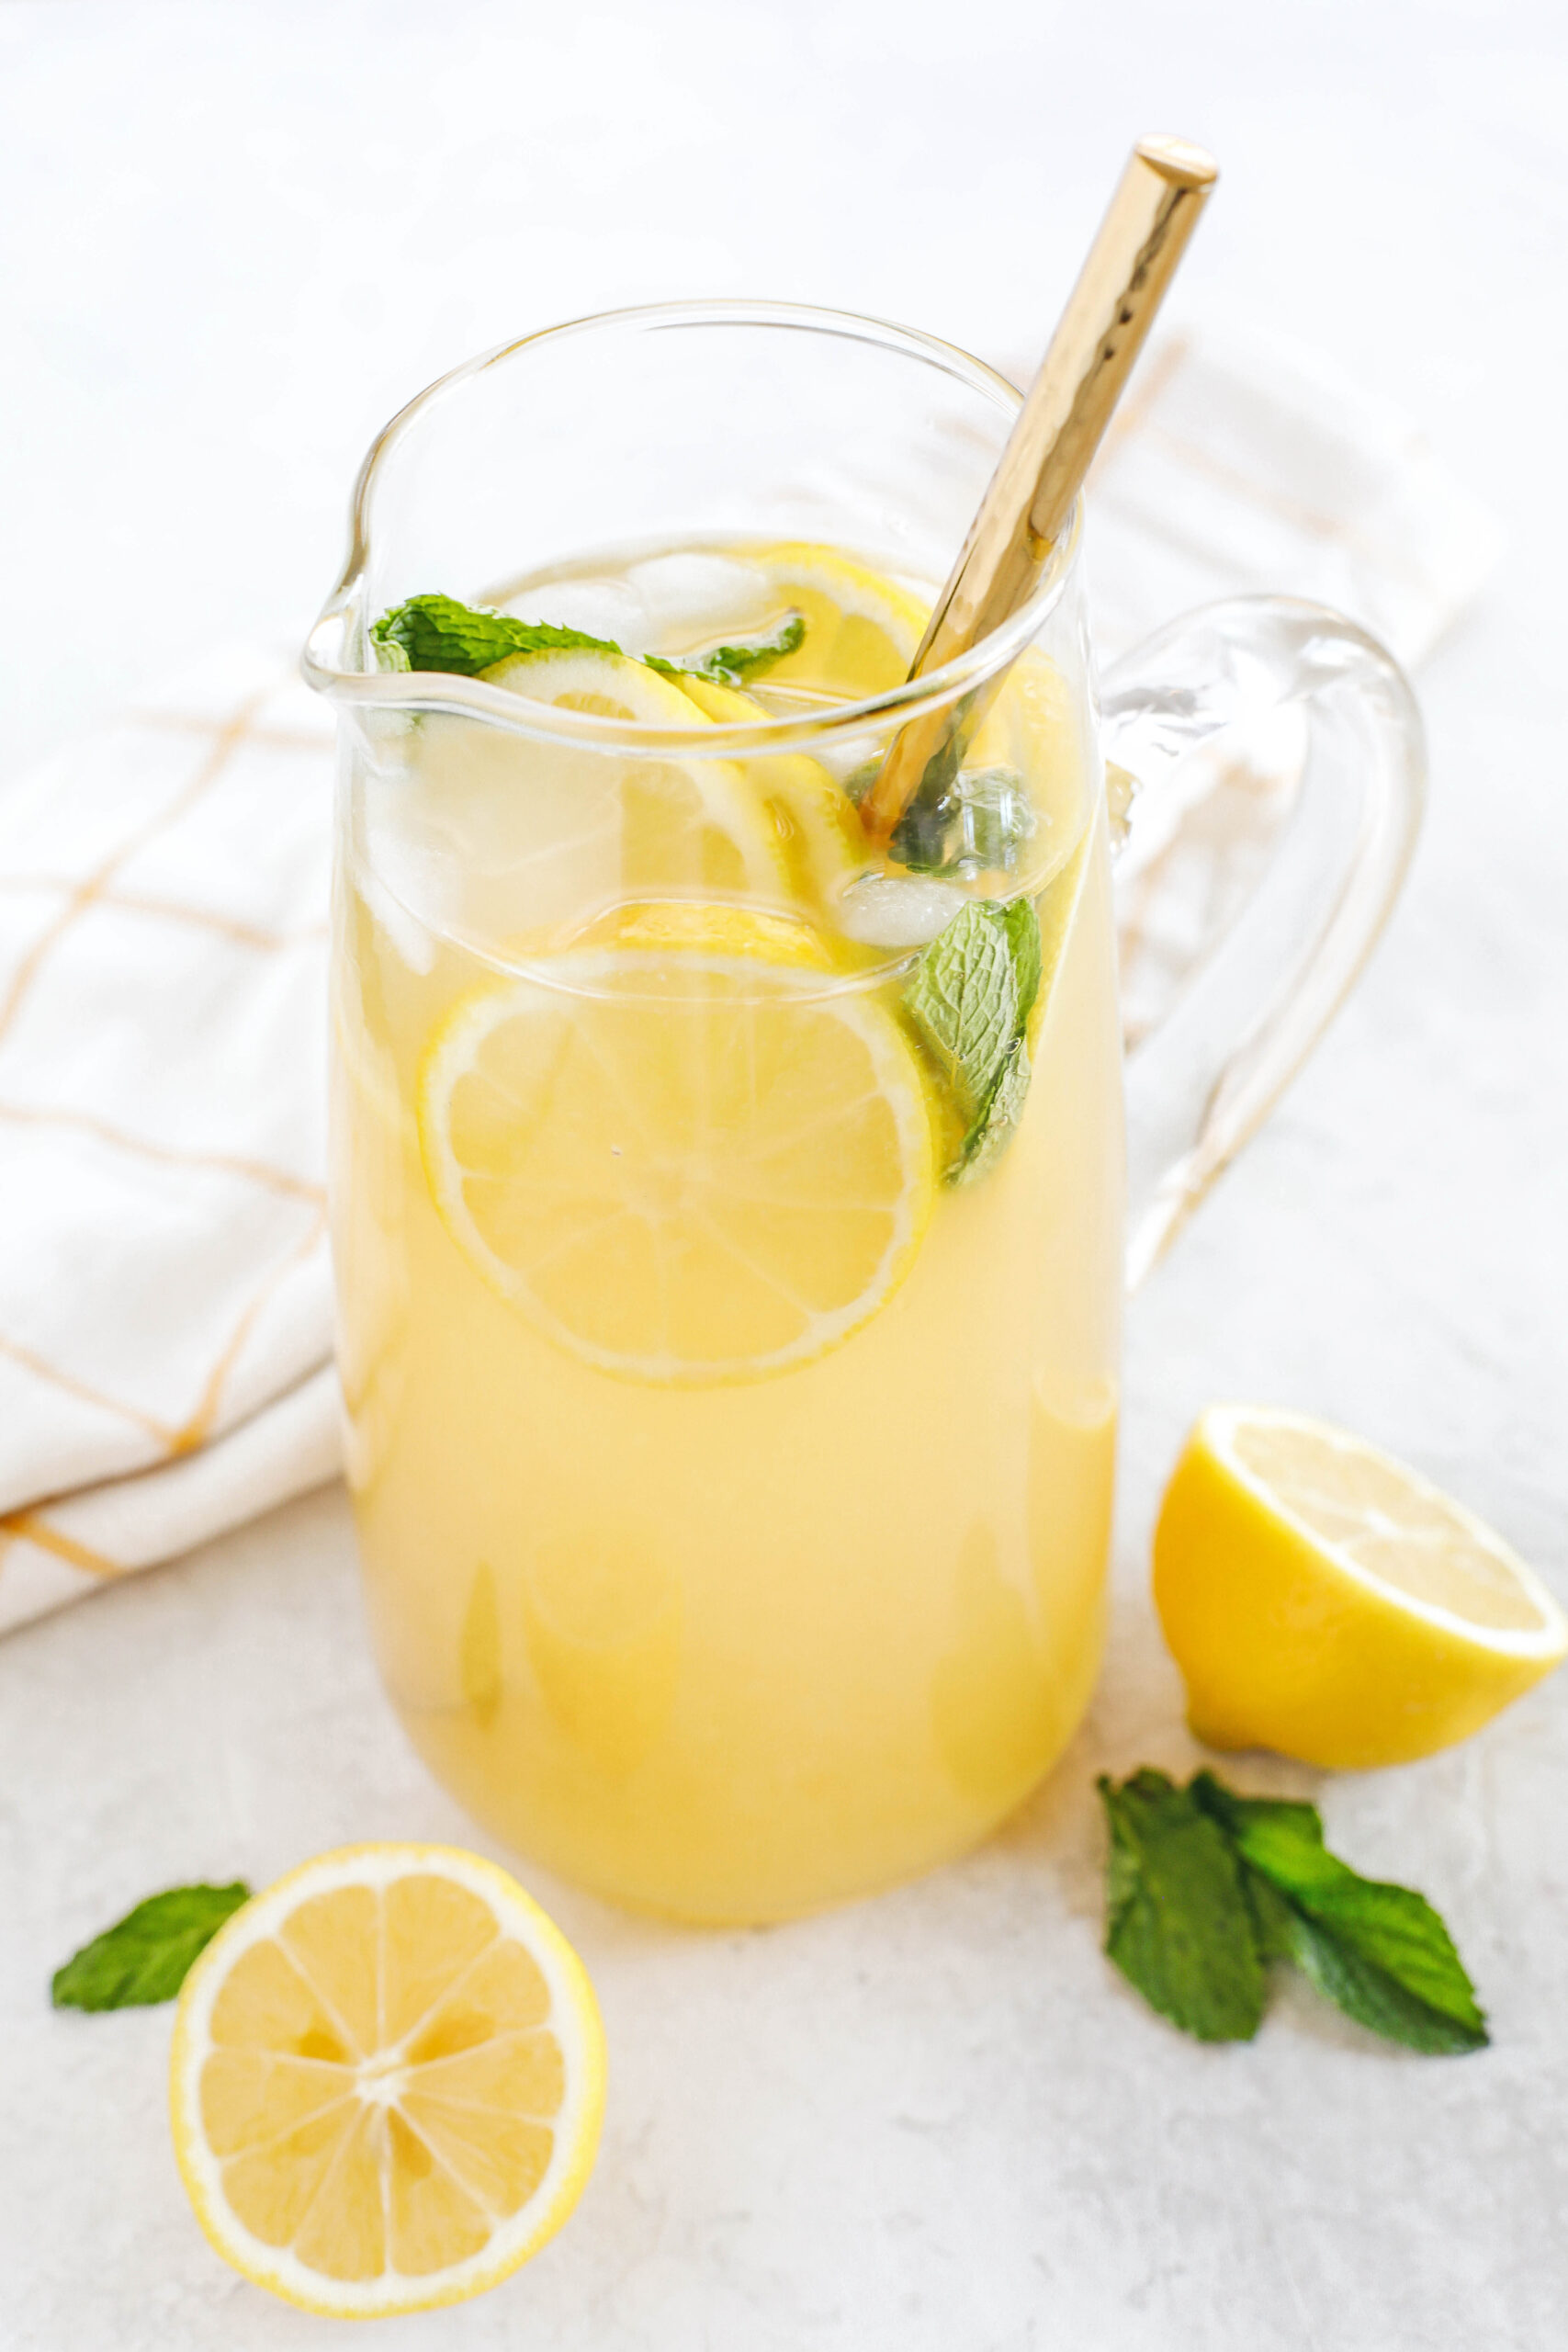 This Honey Ginger Lemonade makes the perfect summer beverage that is refreshing, delicious and easily made with just 4 simple ingredients!